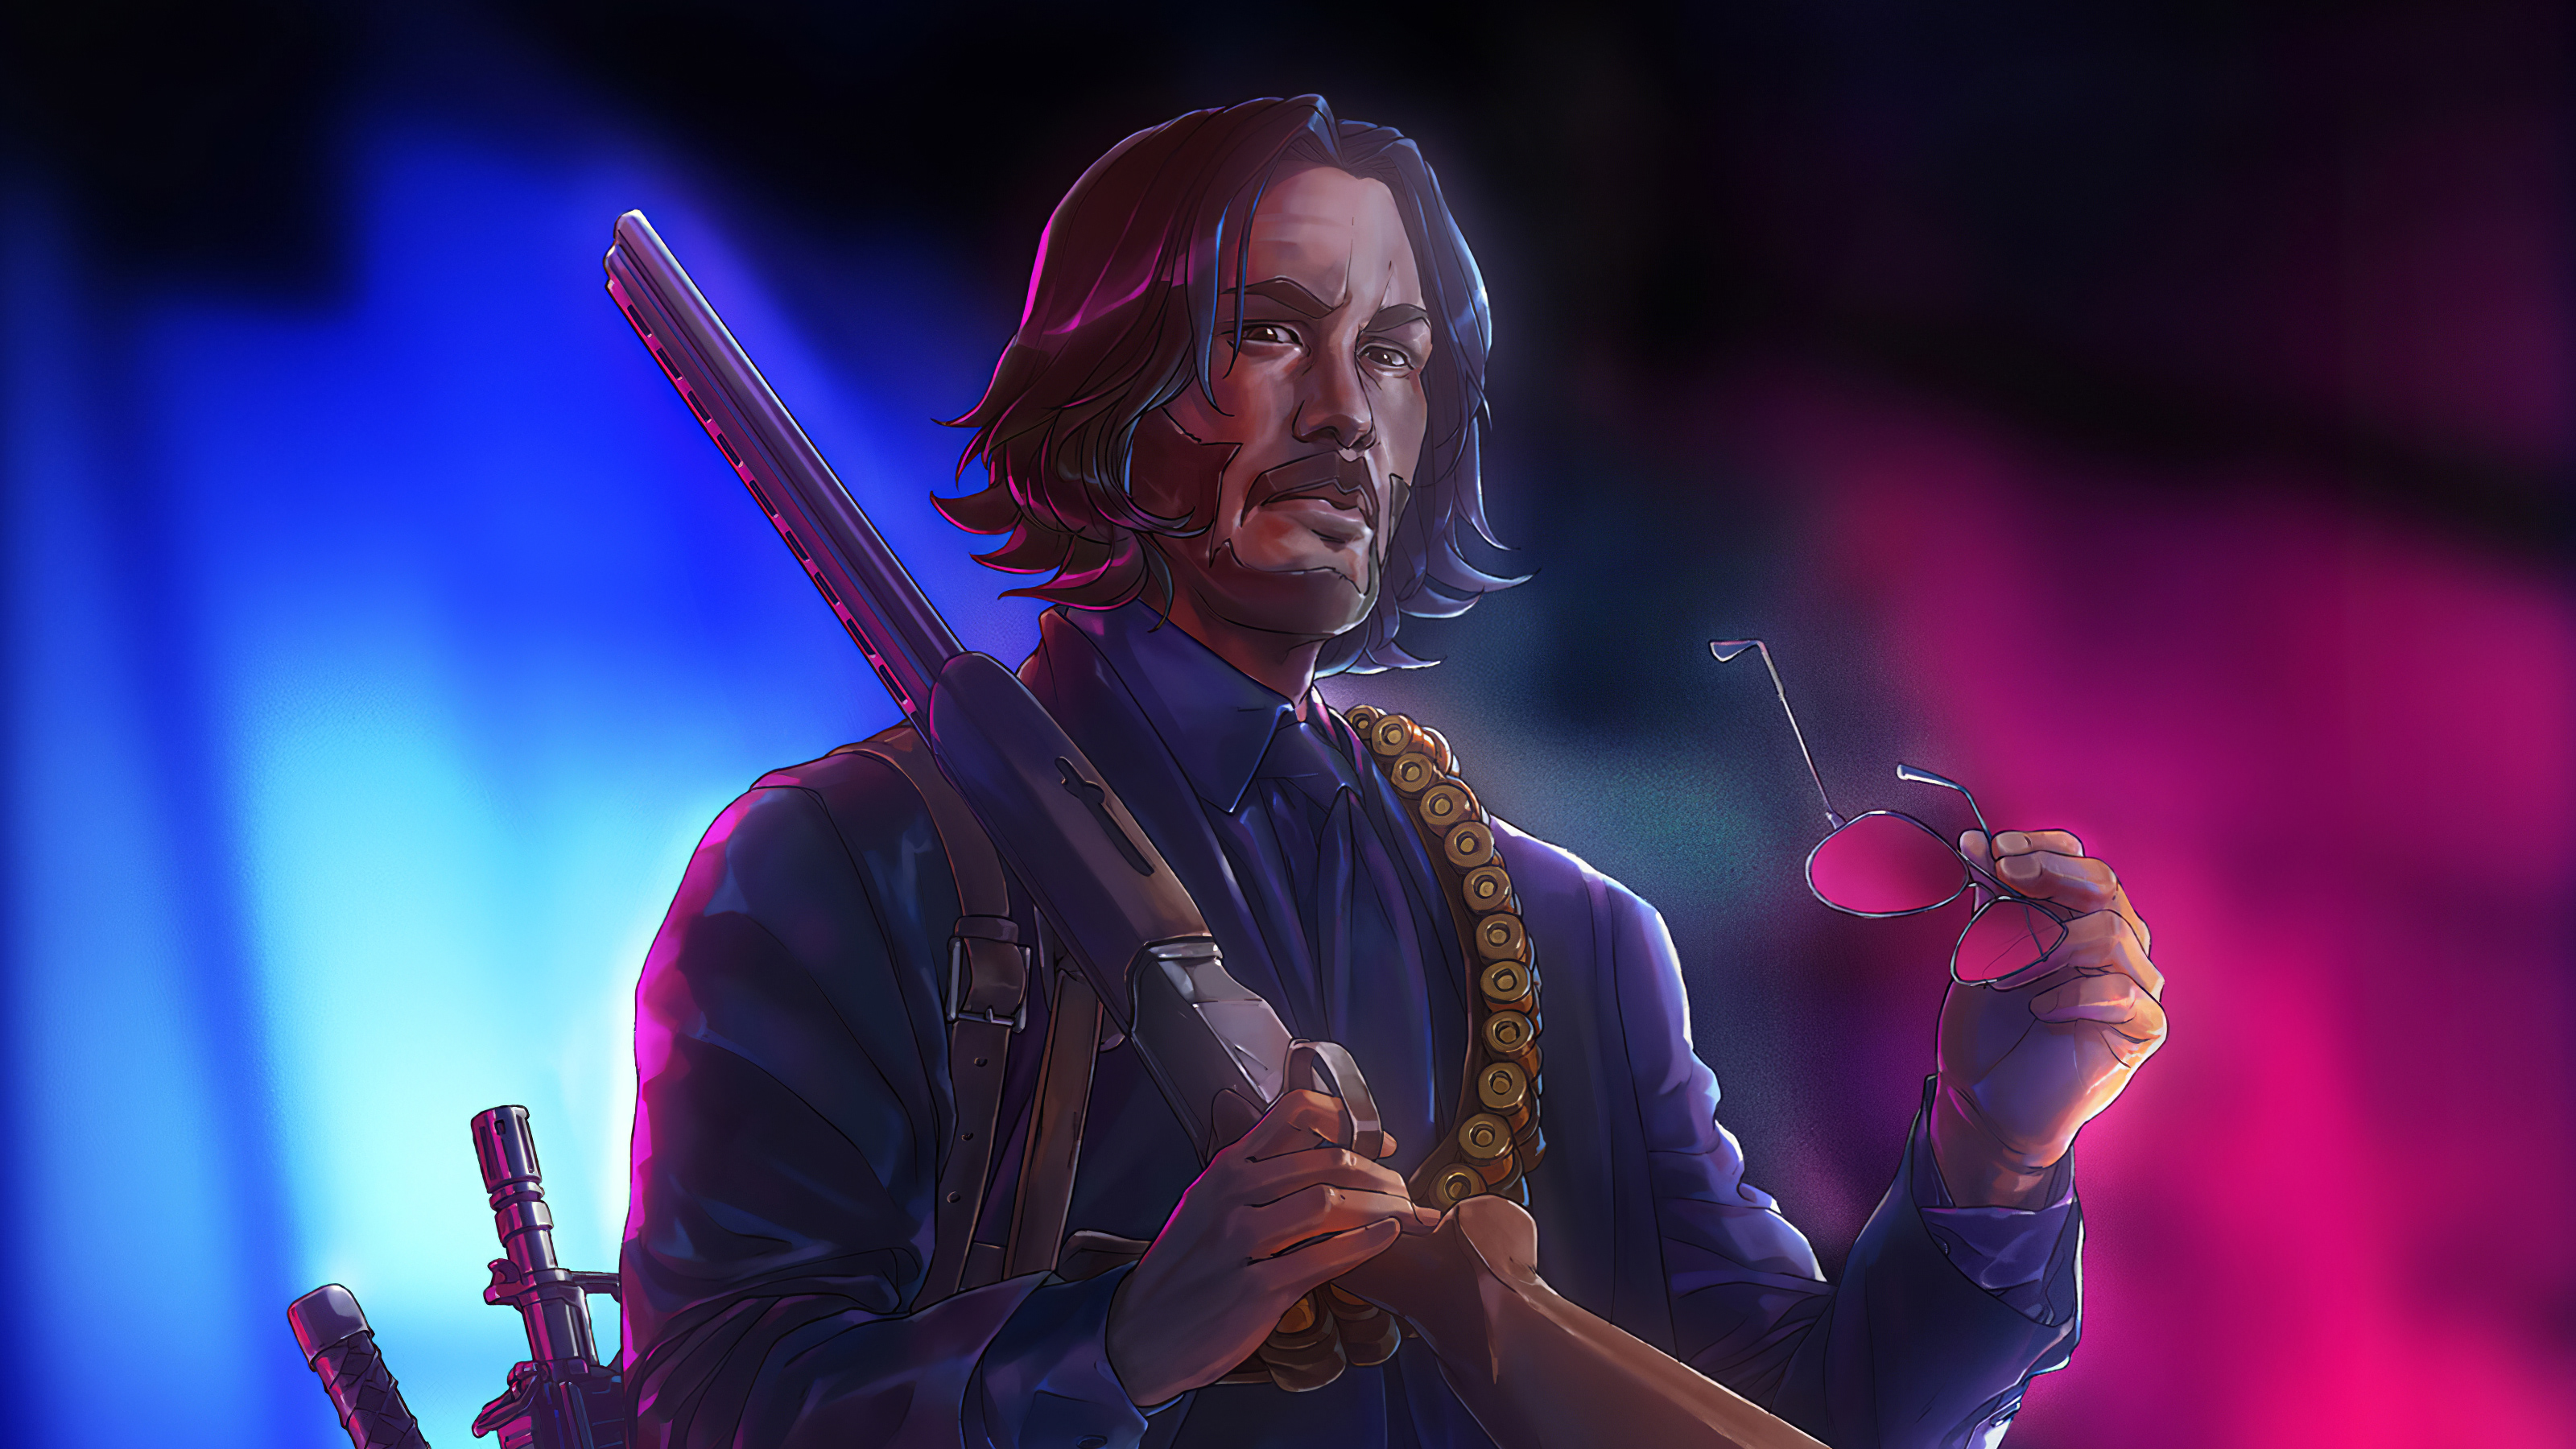 Wallpaper John Wick Illustration